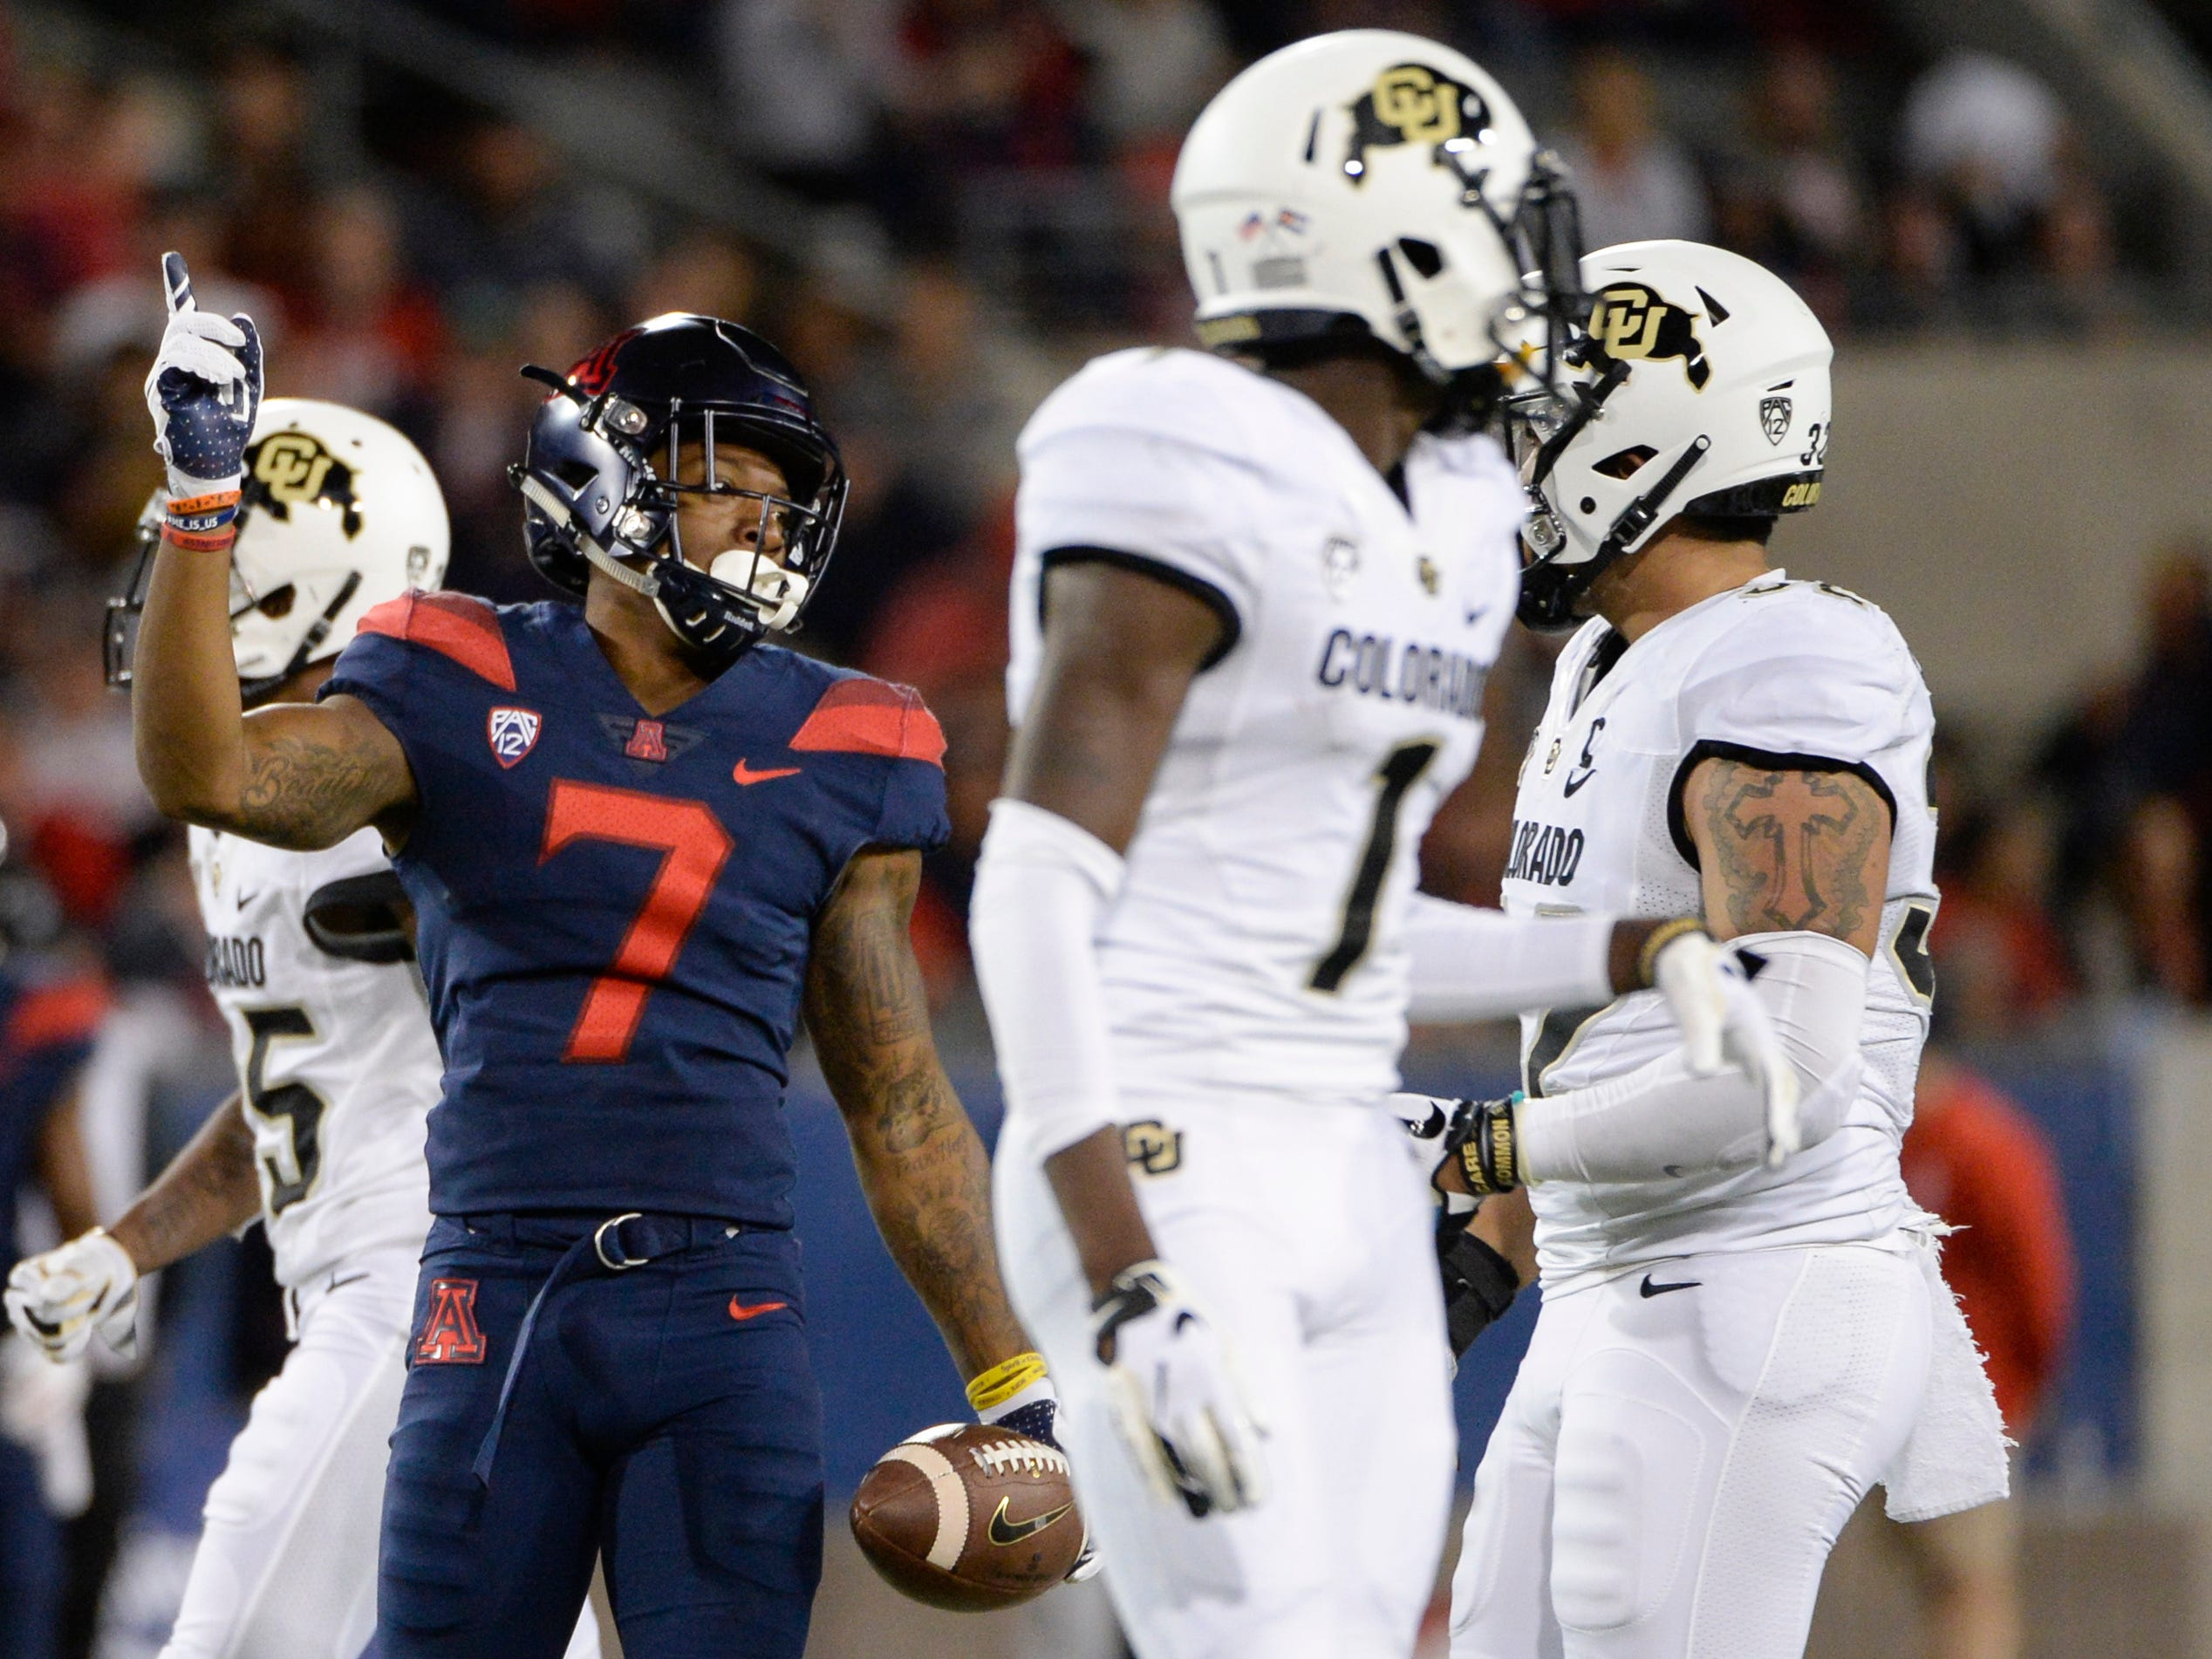 Nov 2, 2018; Tucson, AZ, USA; Arizona Wildcats wide receiver Devaughn Cooper (7) celebrates after making a catch against the Colorado Buffaloes during the first half at Arizona Stadium.